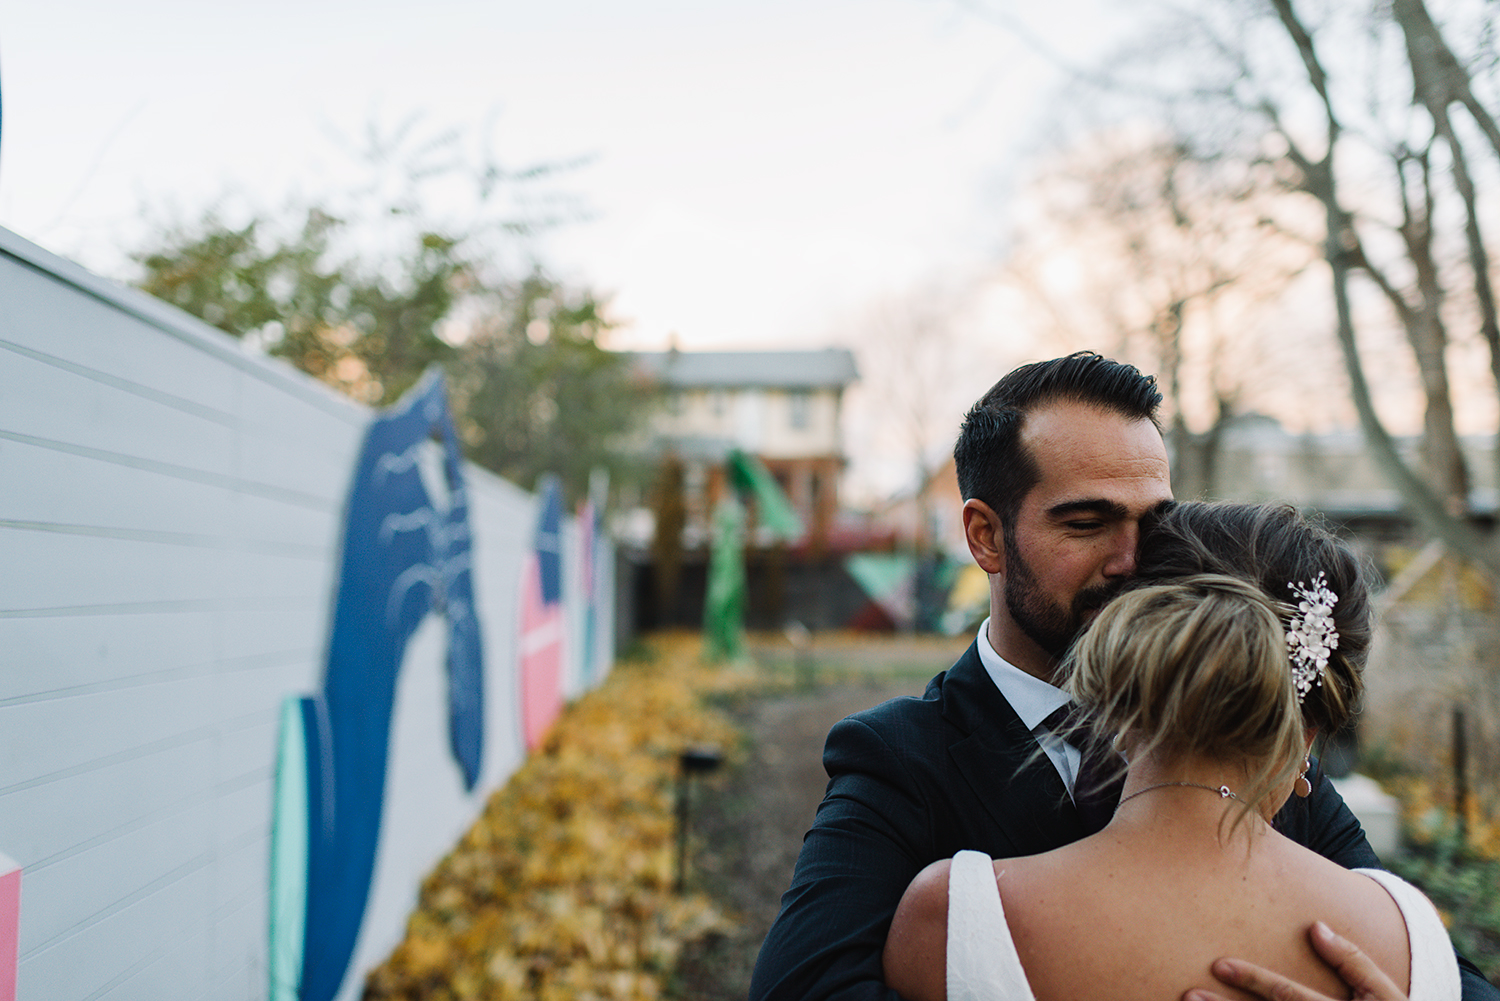 Prince-Edward-County-Wedding-Photographer-Drake-Hotel-Elopement-Venue-Sunset-Portraits-Fall-Winter-Wedding.jpg